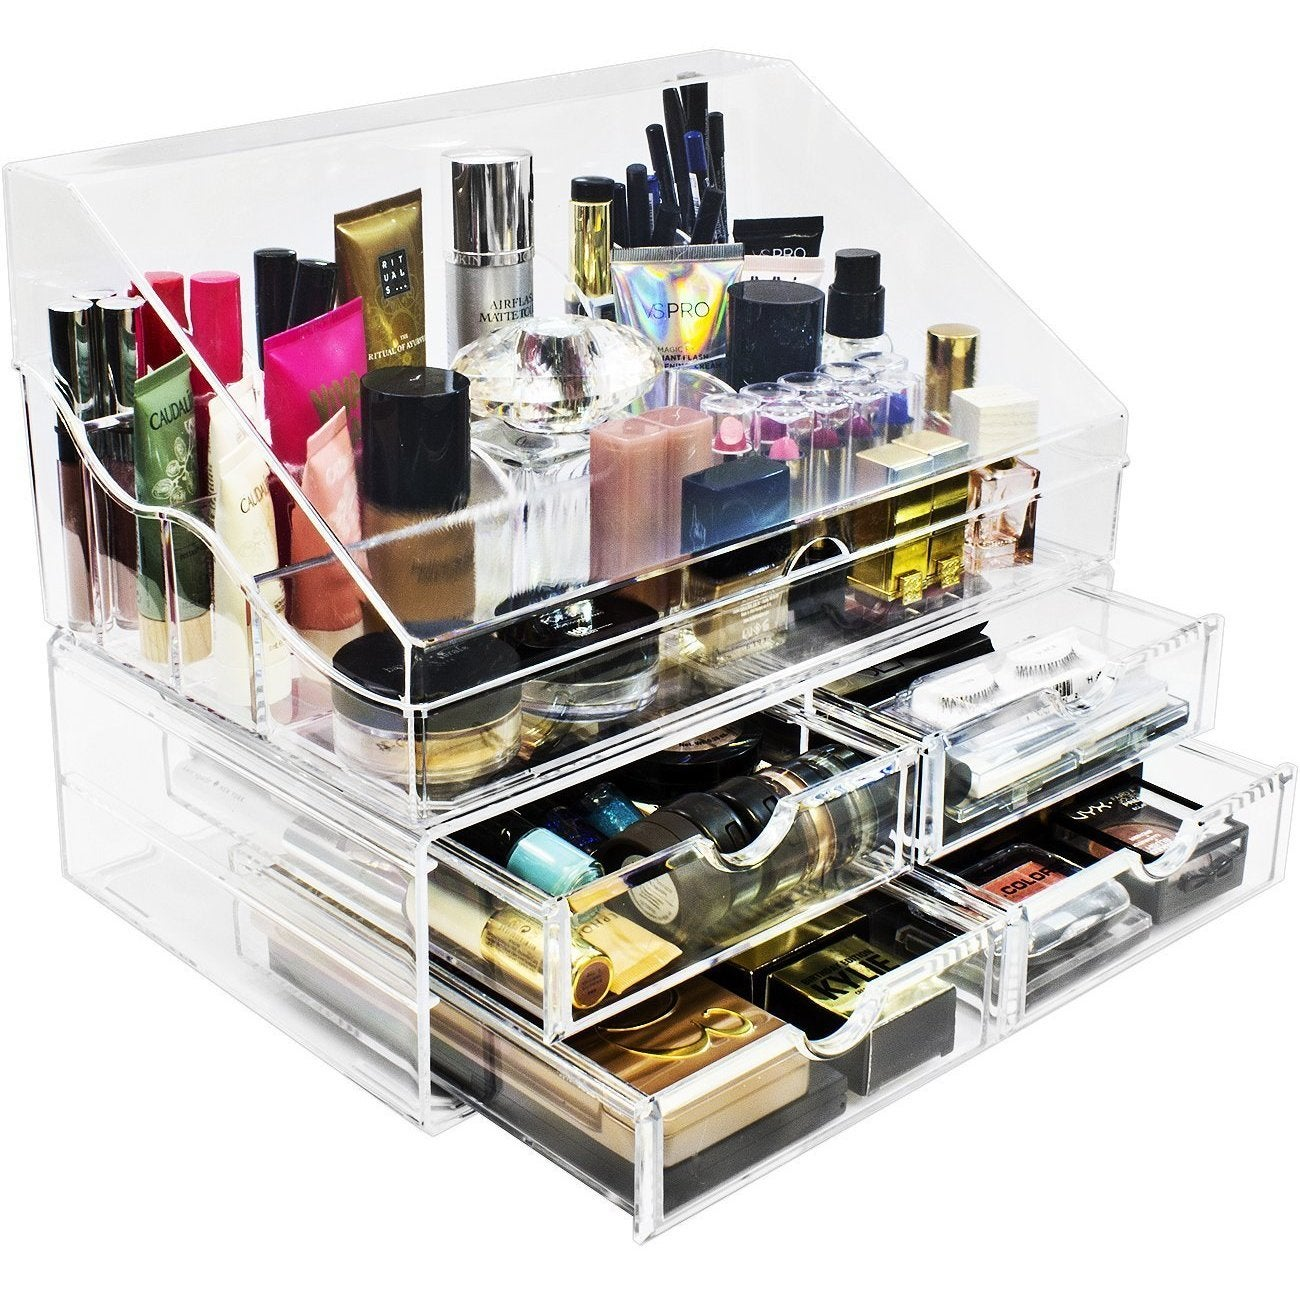 9cae83d867e Shop Sorbus Makeup Organizer Storage Case (Style 2 - Slanted Lid Sectional  Top with 4 Drawers) - Free Shipping Today - Overstock - 16915934